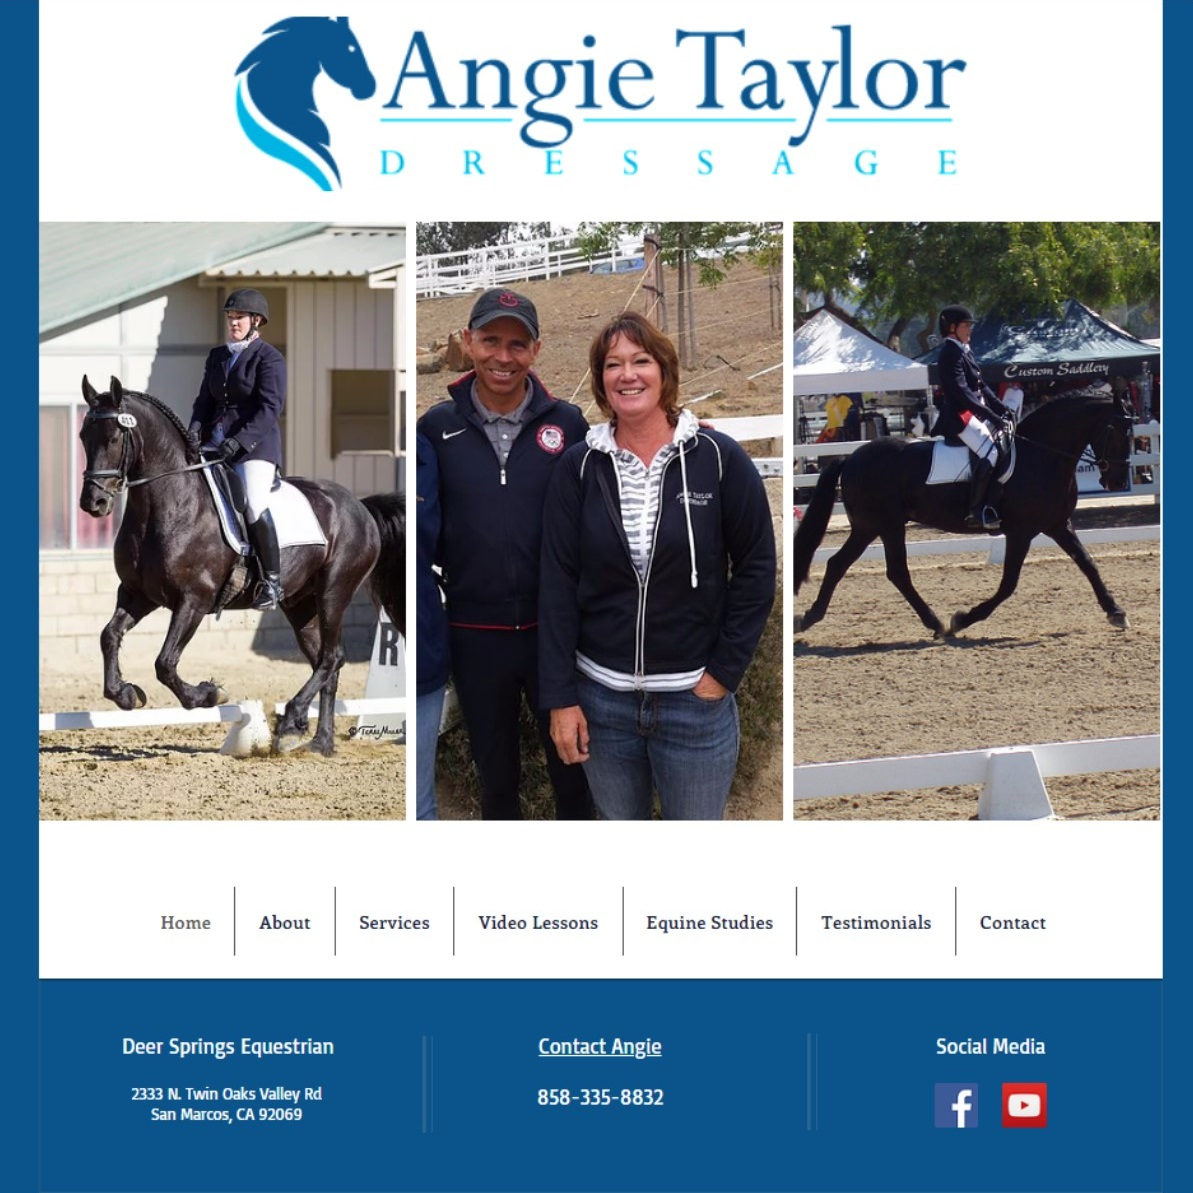 Angie Taylor Dressage